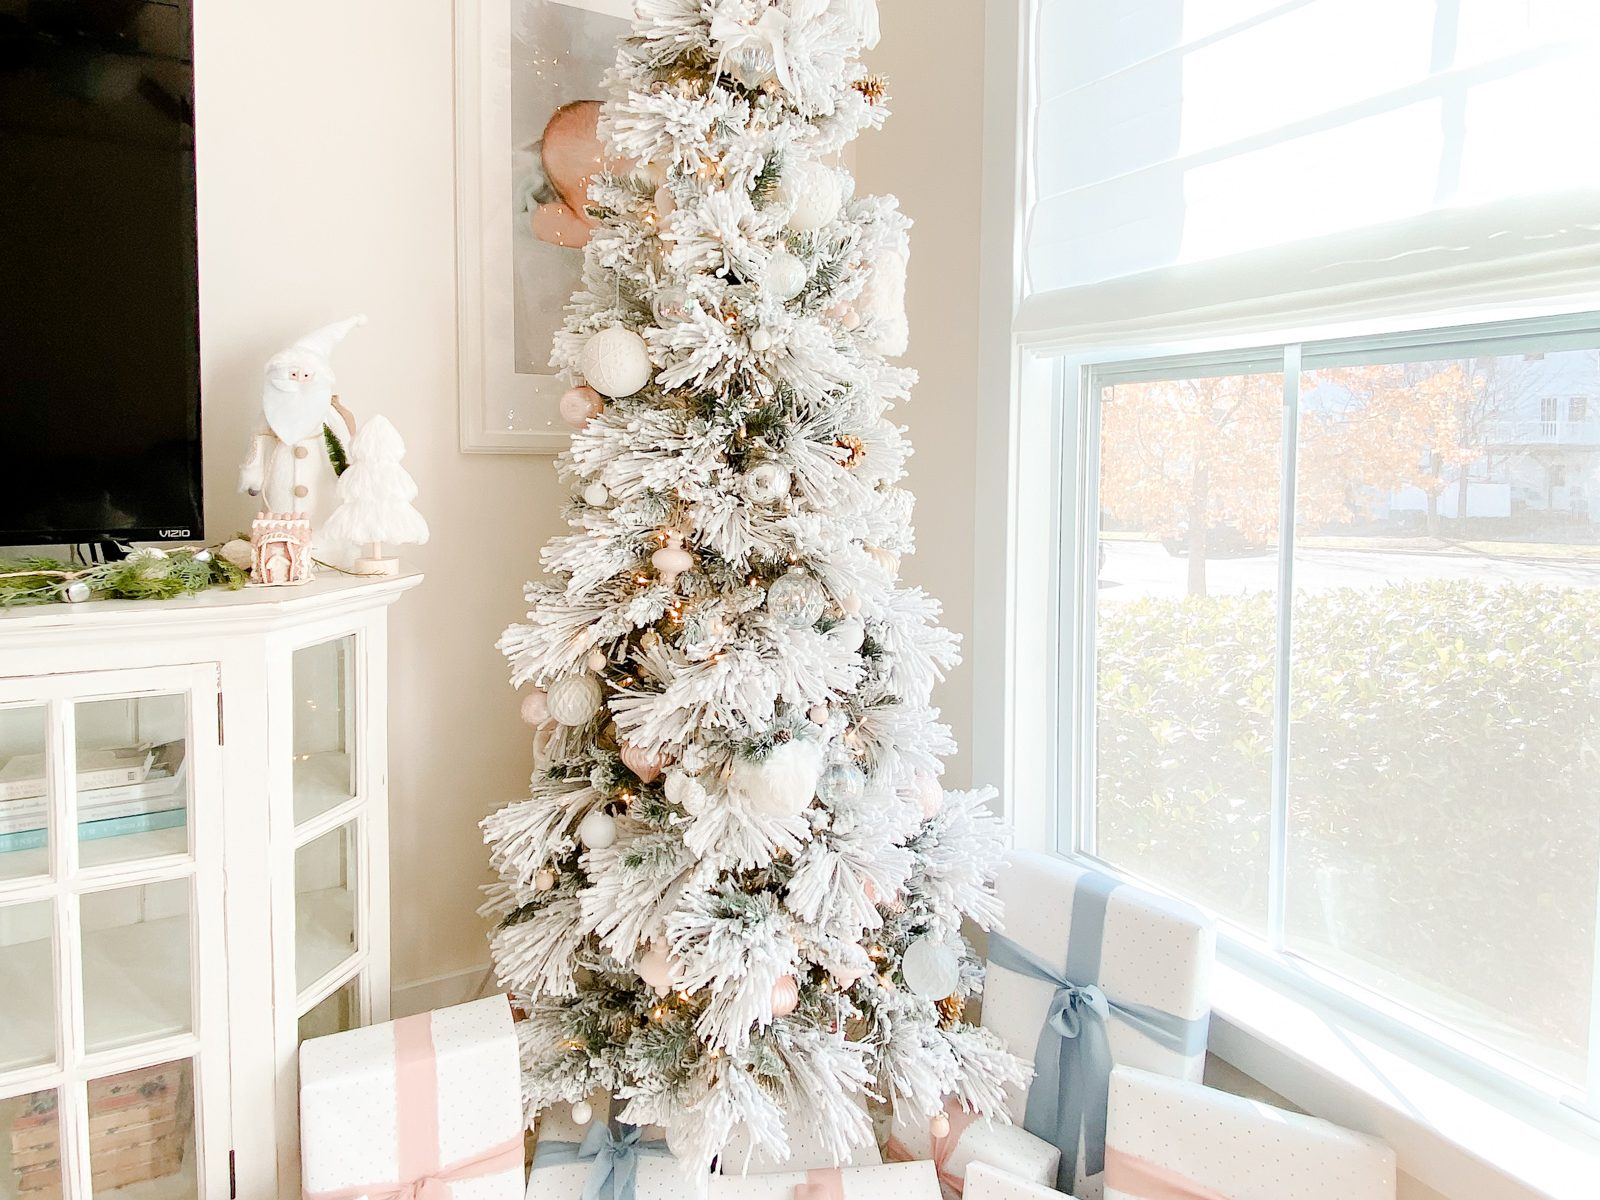 flocked Christmas tree, white Christmas tree, snow, Christmas decor, white tree with ornaments, Christmas presents